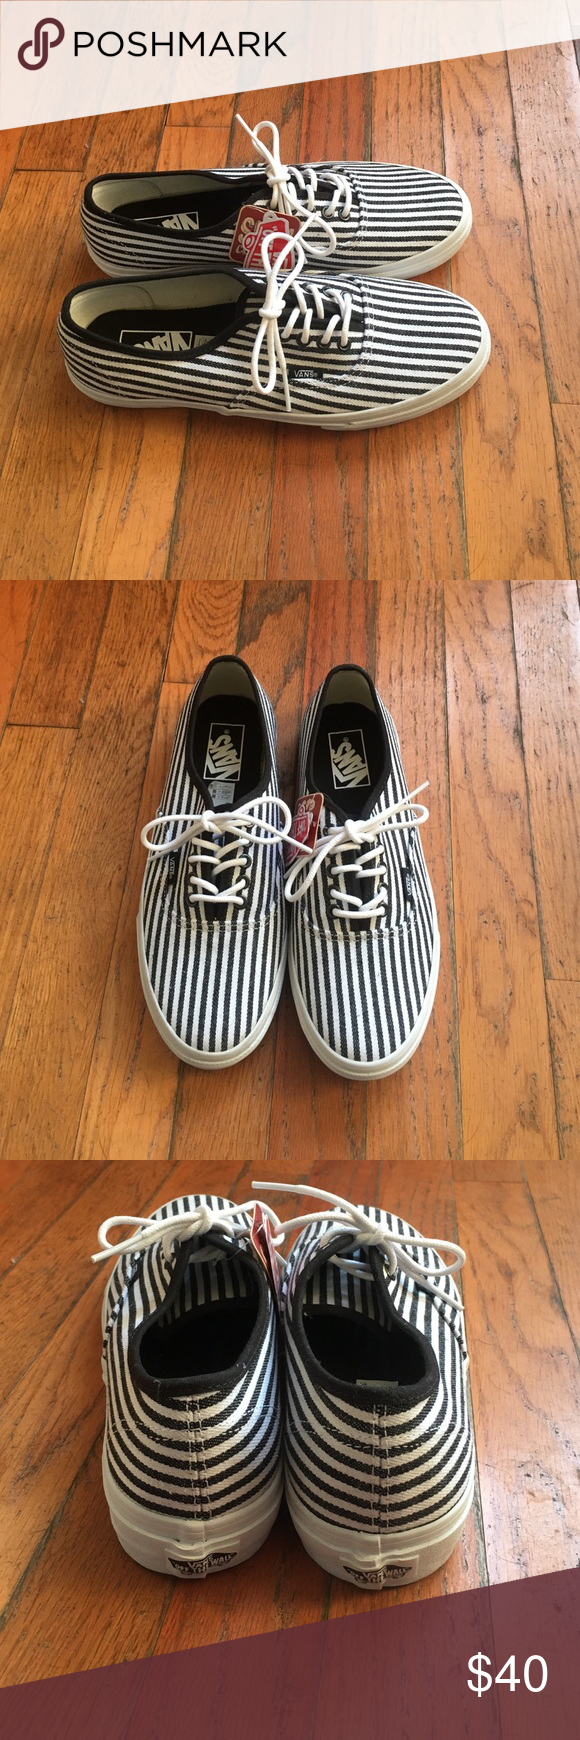 Vans Authentic Slim Stripes Vans Authentic Slim Hickory Stripes, Black and White, New in Box, Women's size 9, Men's size 7.5 Vans Shoes Sneakers